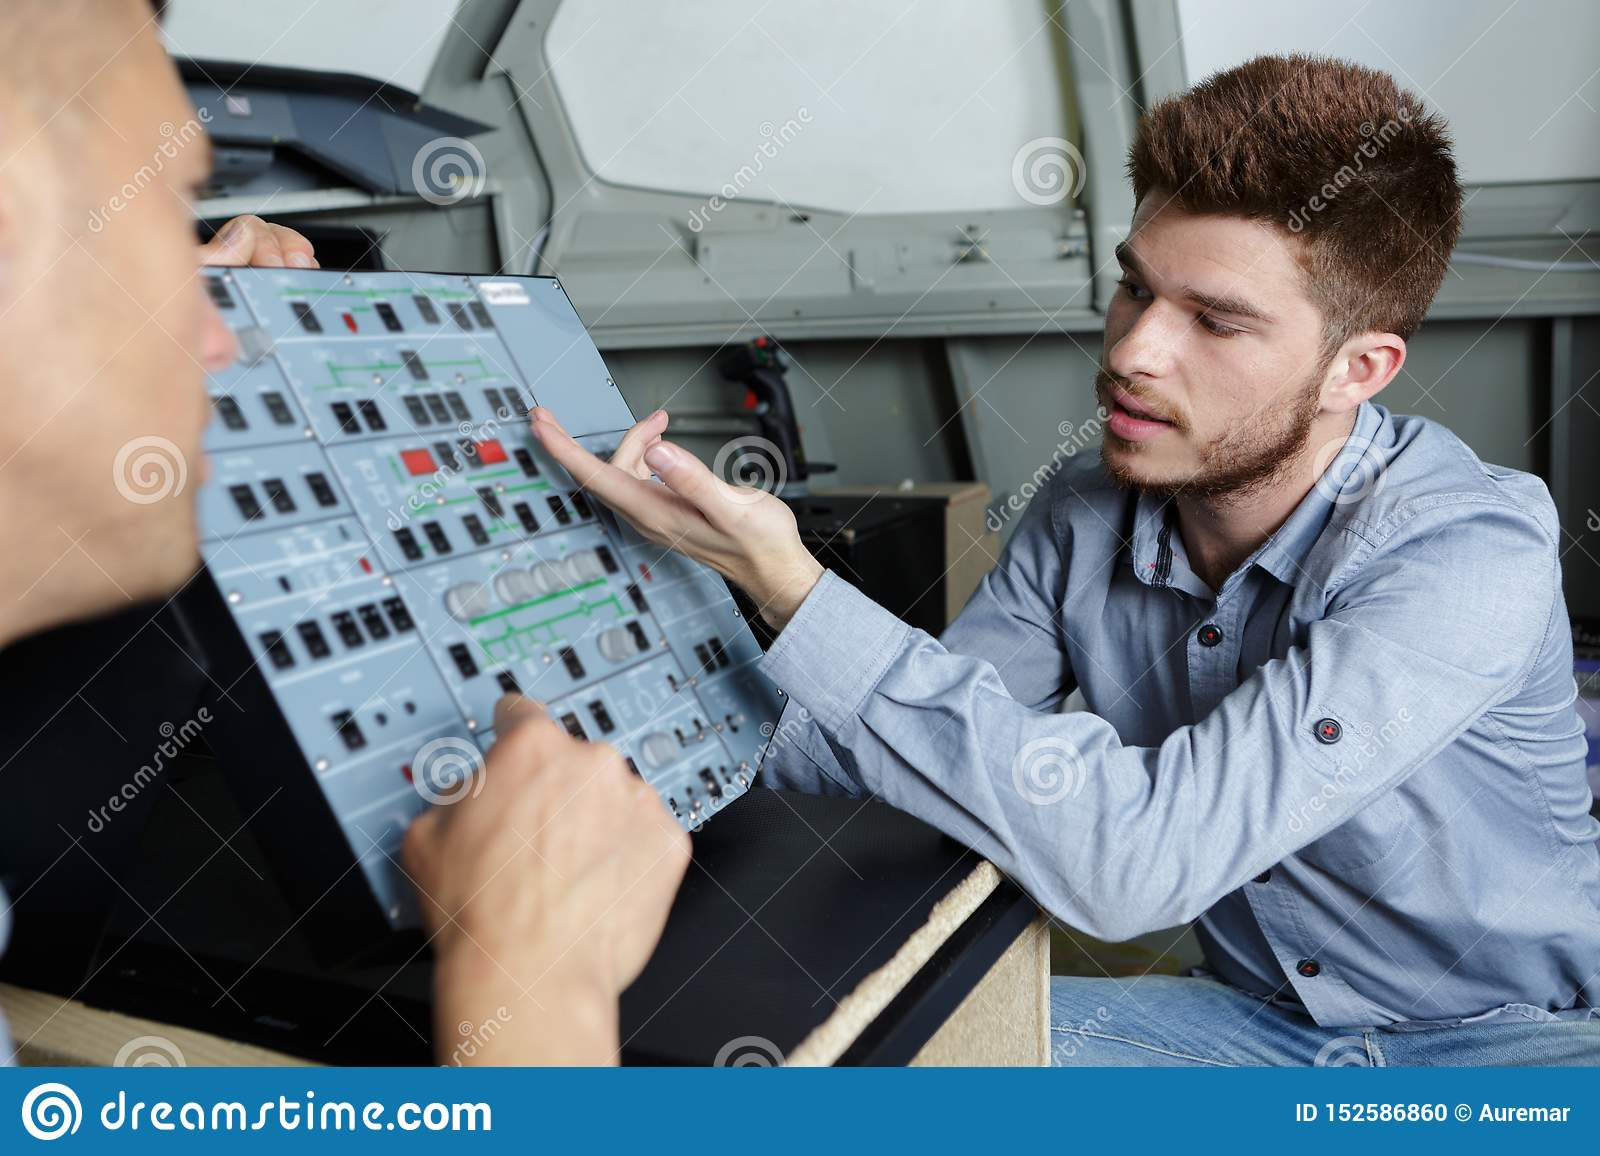 Apprentice being taught controls machine